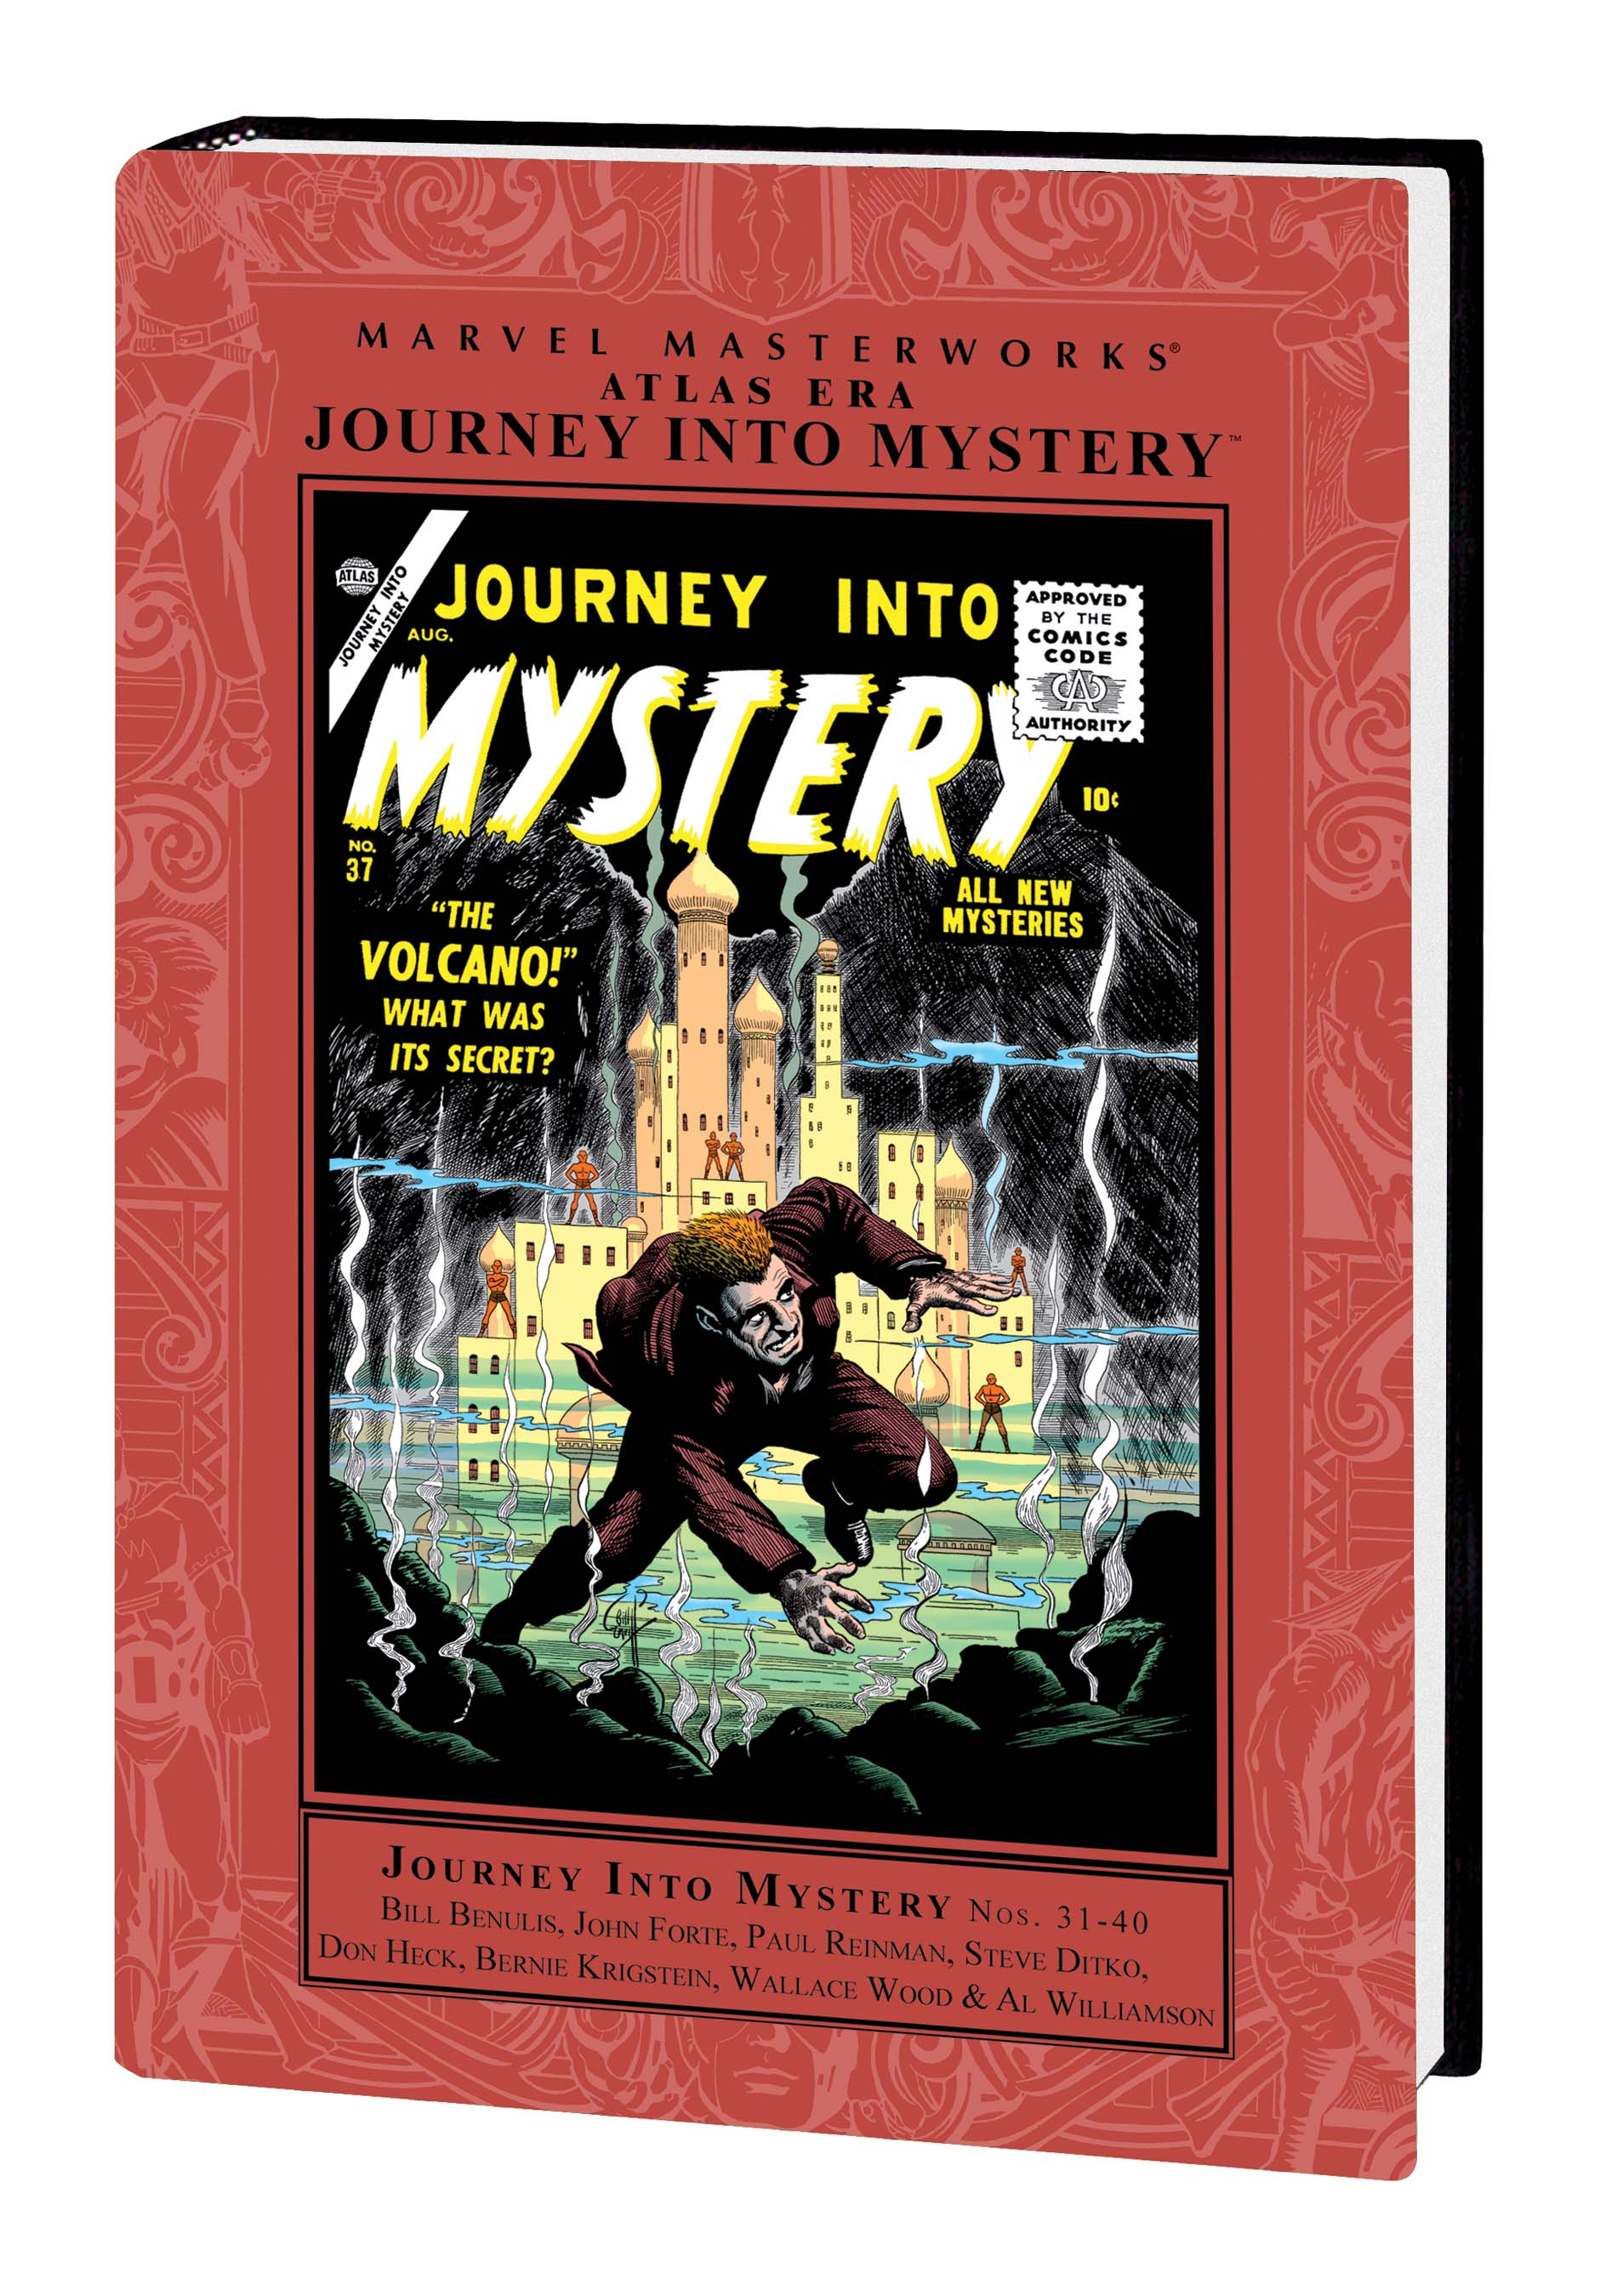 Marvel Masterworks: Atlas Era Journey Into Mystery (Hardcover)